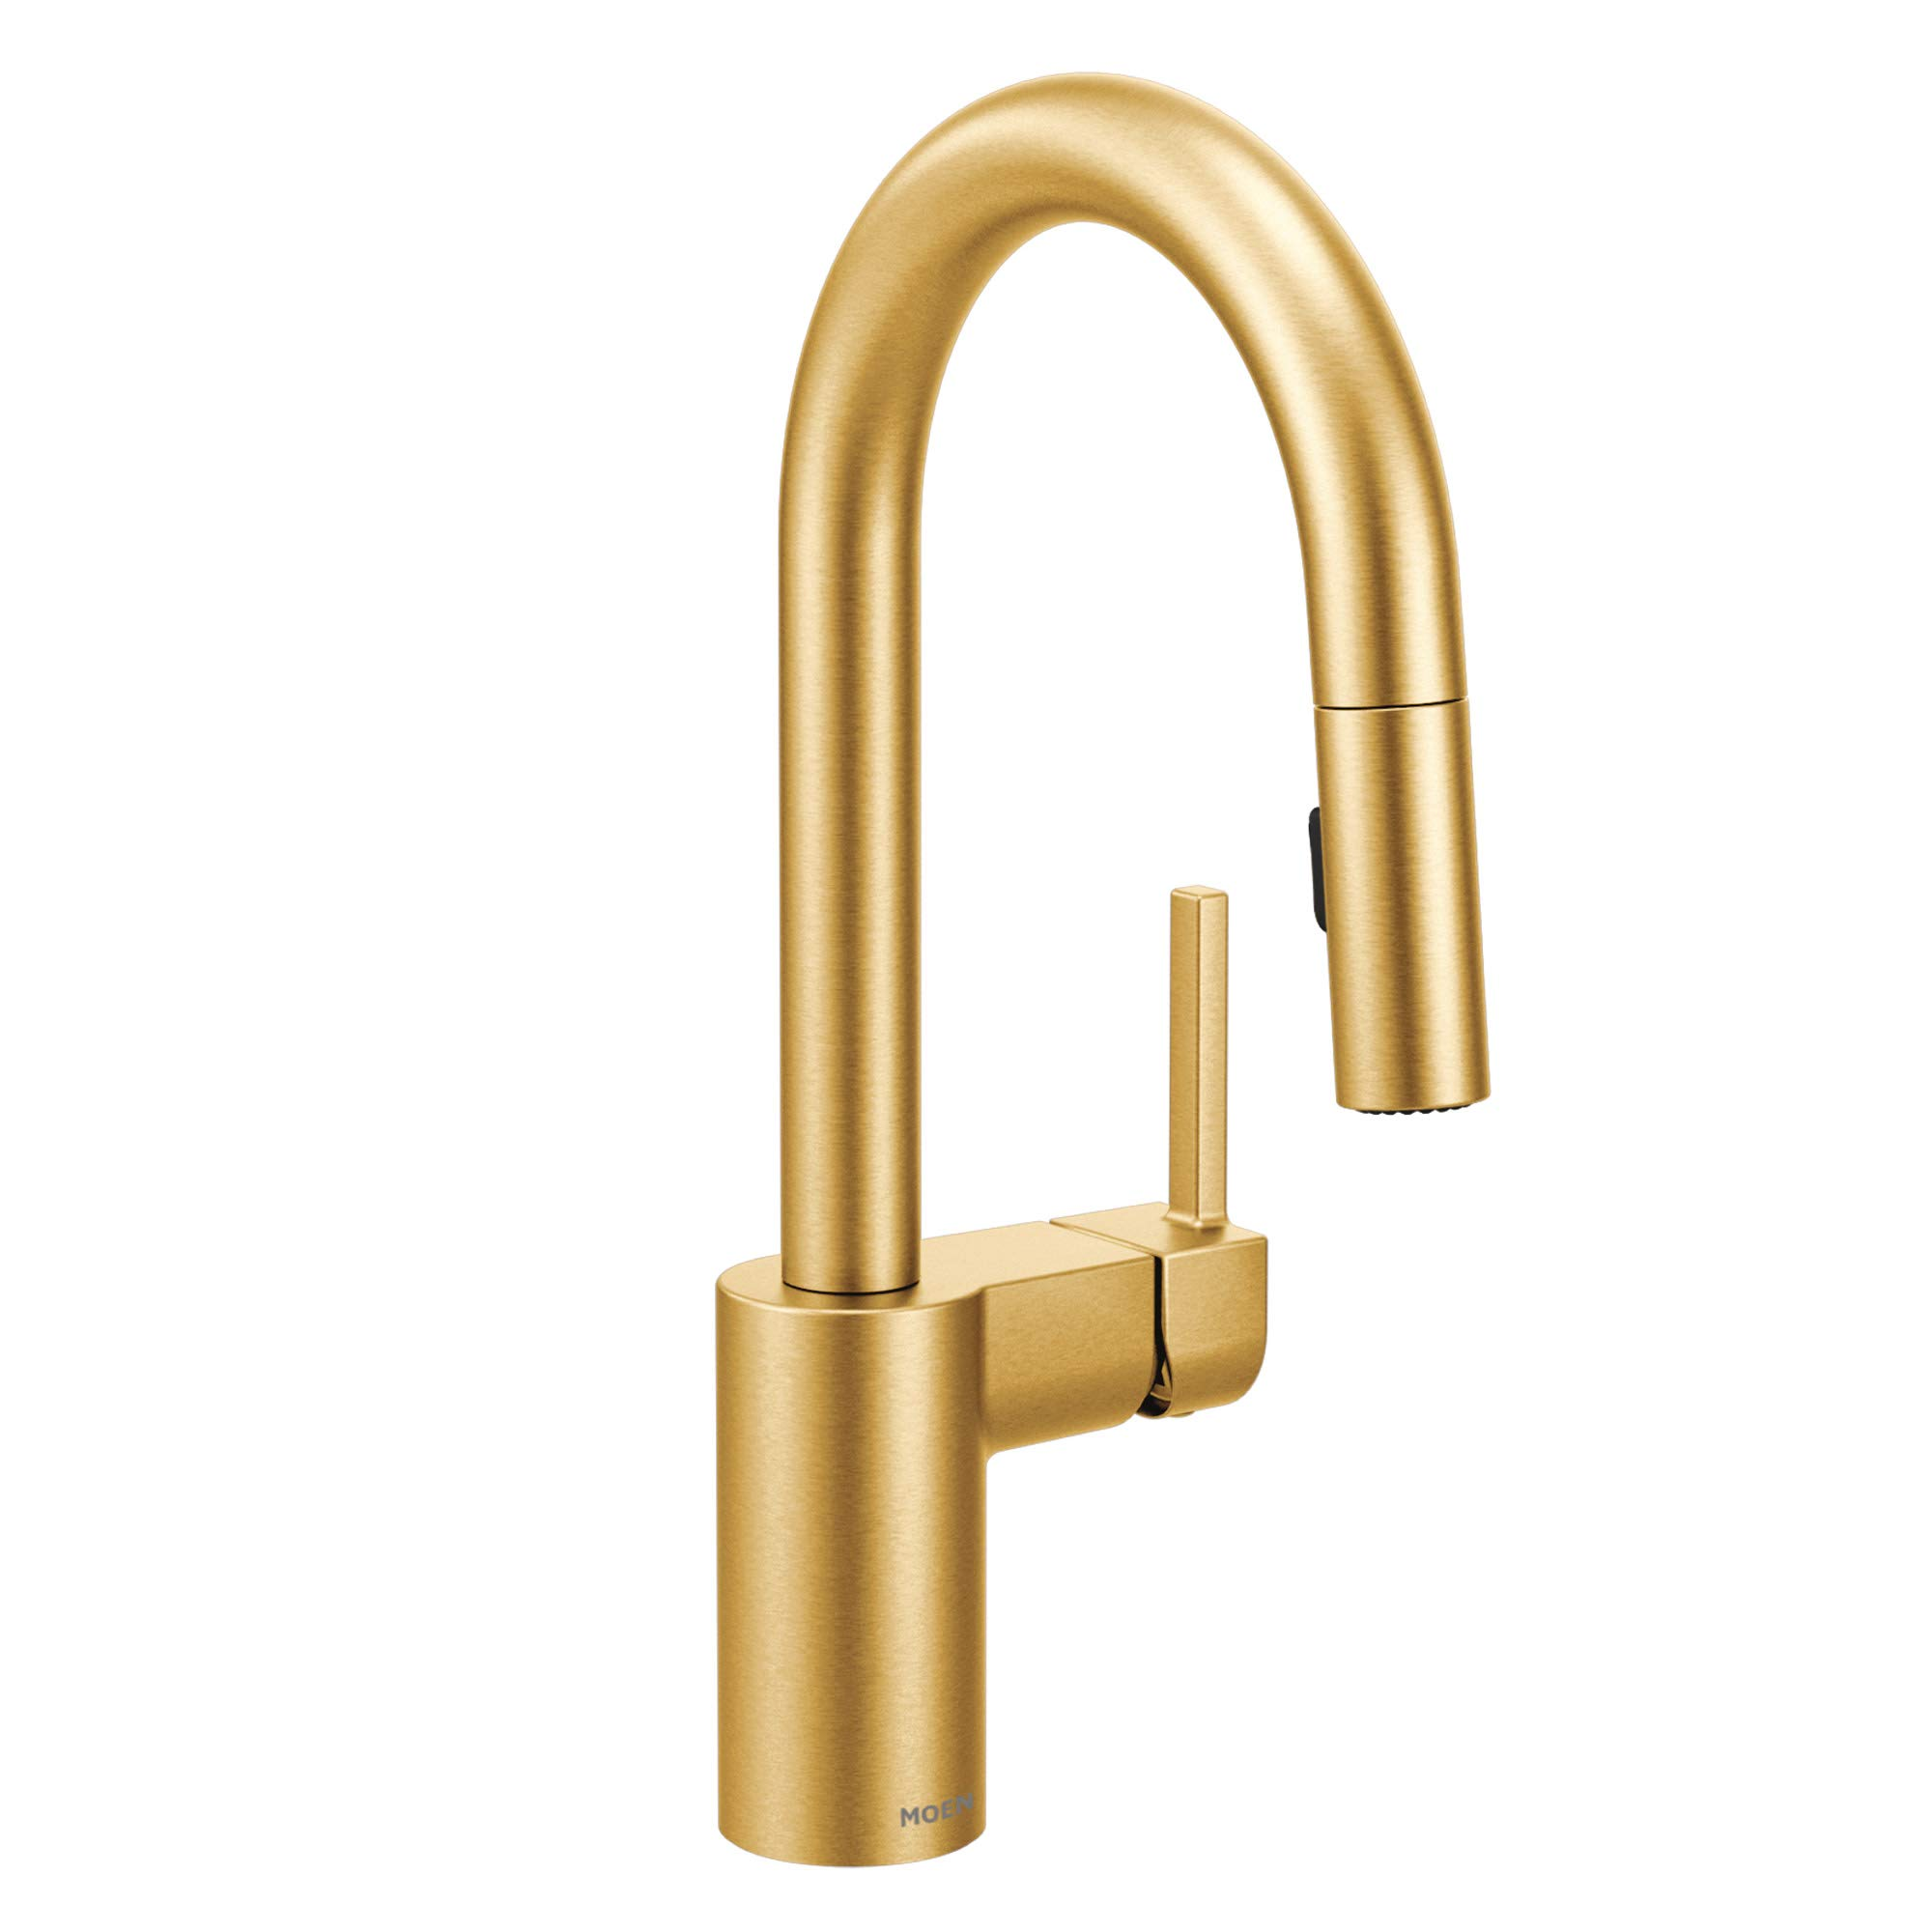 Moen 5965BG Single Handle Pullout Spray Bar Faucet with Reflex Technology from the Align Collection